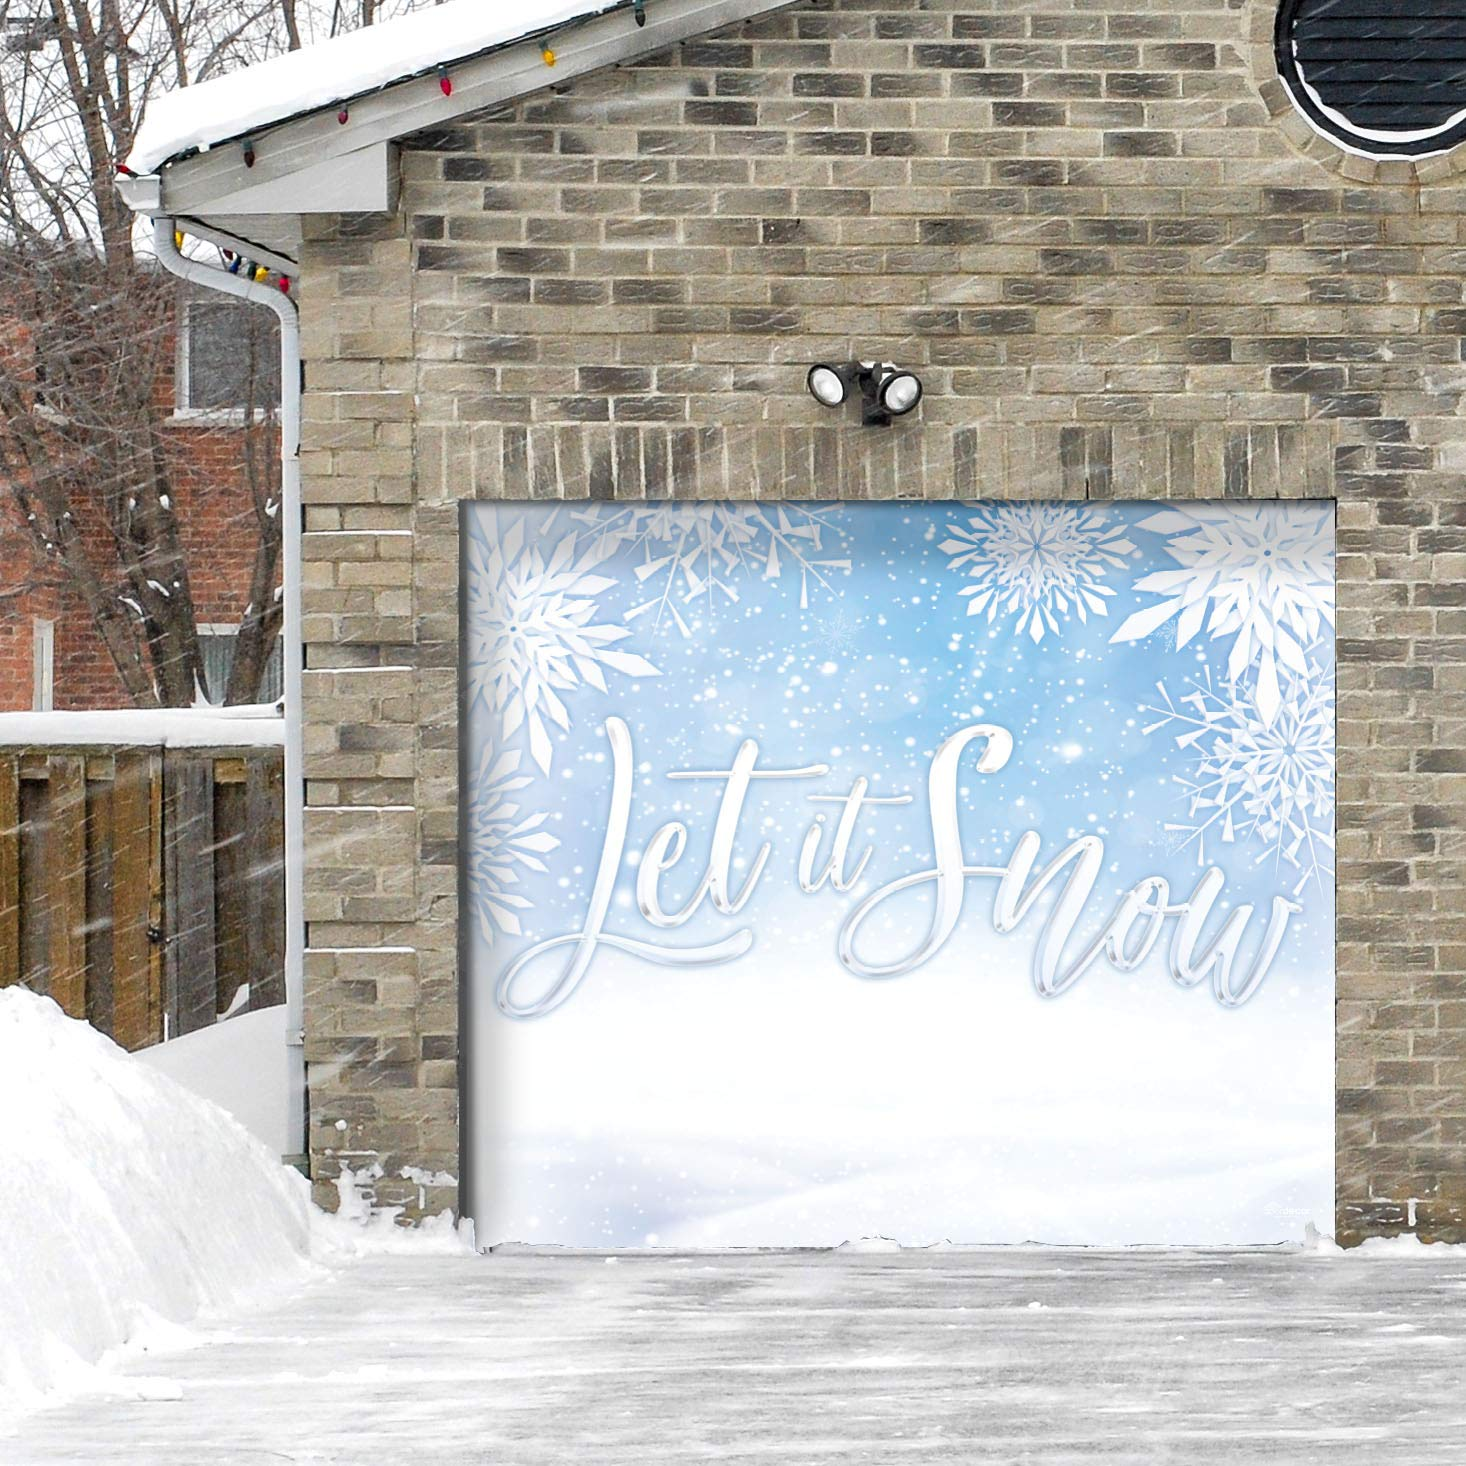 Victory Corps Let it Snow - Holiday Garage Door Banner Mural Sign Décor 7'x 8' Car Garage - The Original Holiday Garage Door Banner Decor